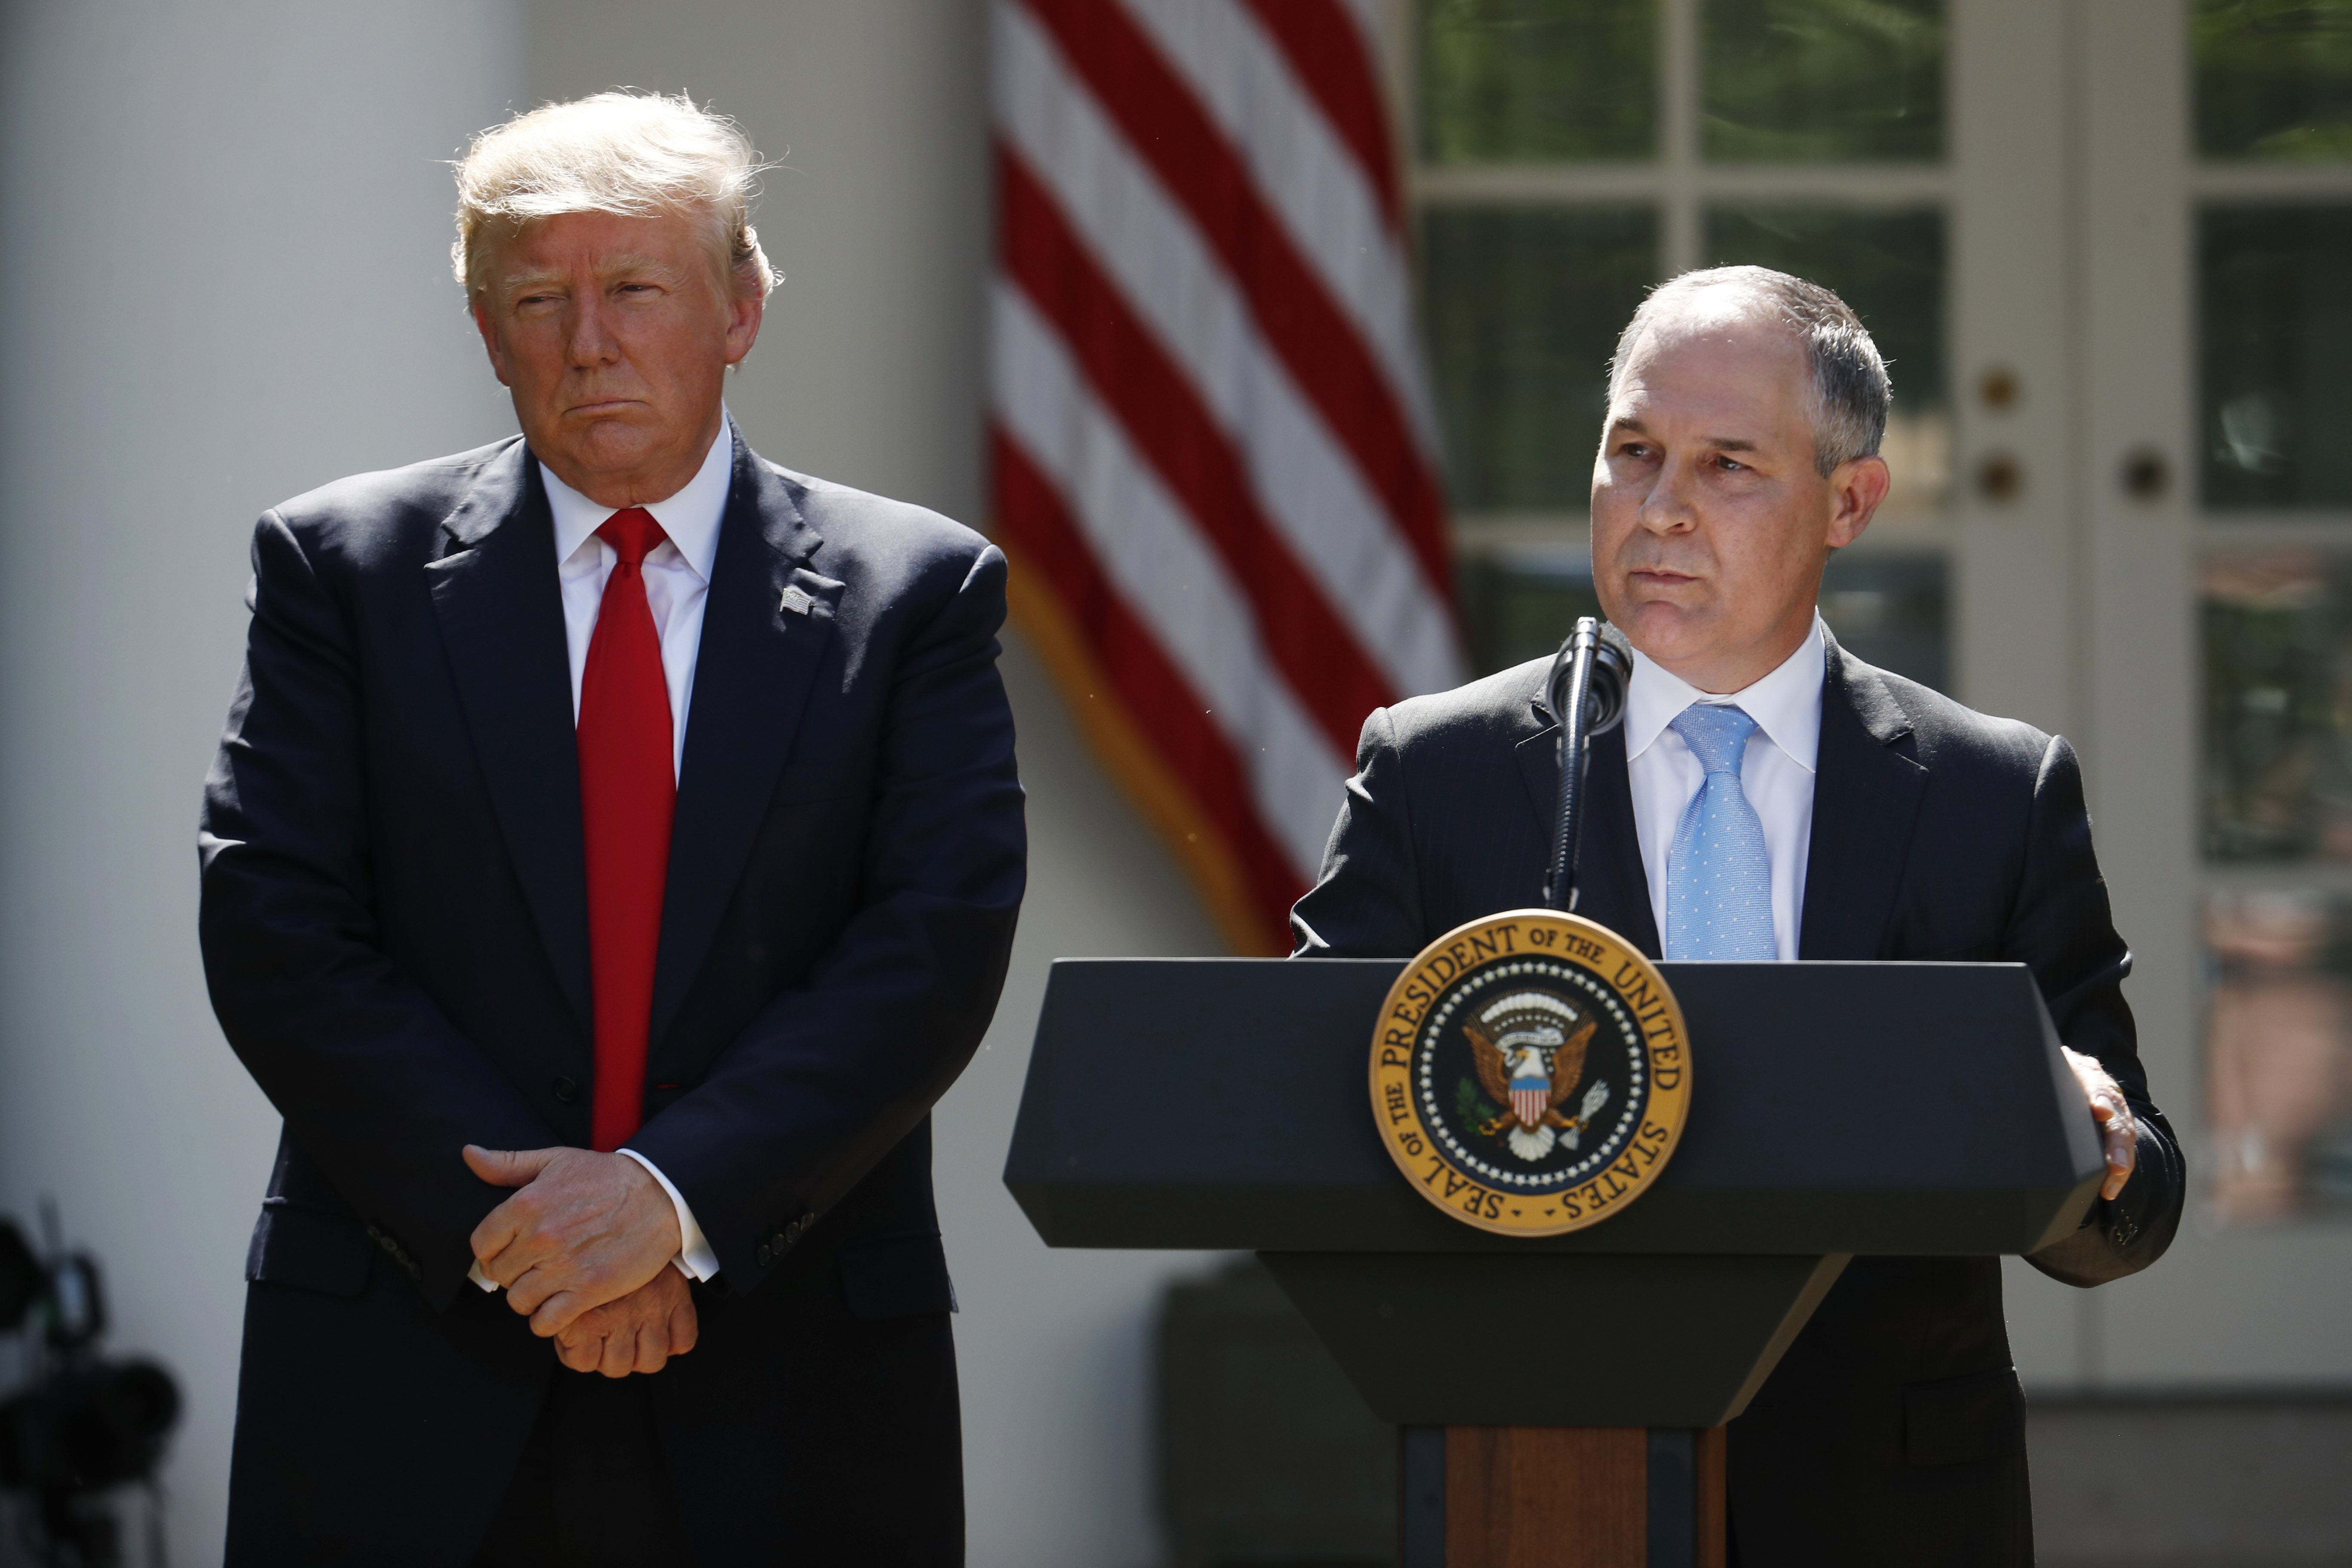 In this June 1, 2017, photo, President Donald Trump listens as EPA Administrator Scott Pruitt speaks about the U.S. role in the Paris climate change accord in the Rose Garden of the White House in Washington. Trump's environmental chief has been trying to clear the air about why his boss is pulling out of the Paris climate accord, but some of the claims he's making are as solid as smoke. (AP Photo/Pablo Martinez Monsivais)